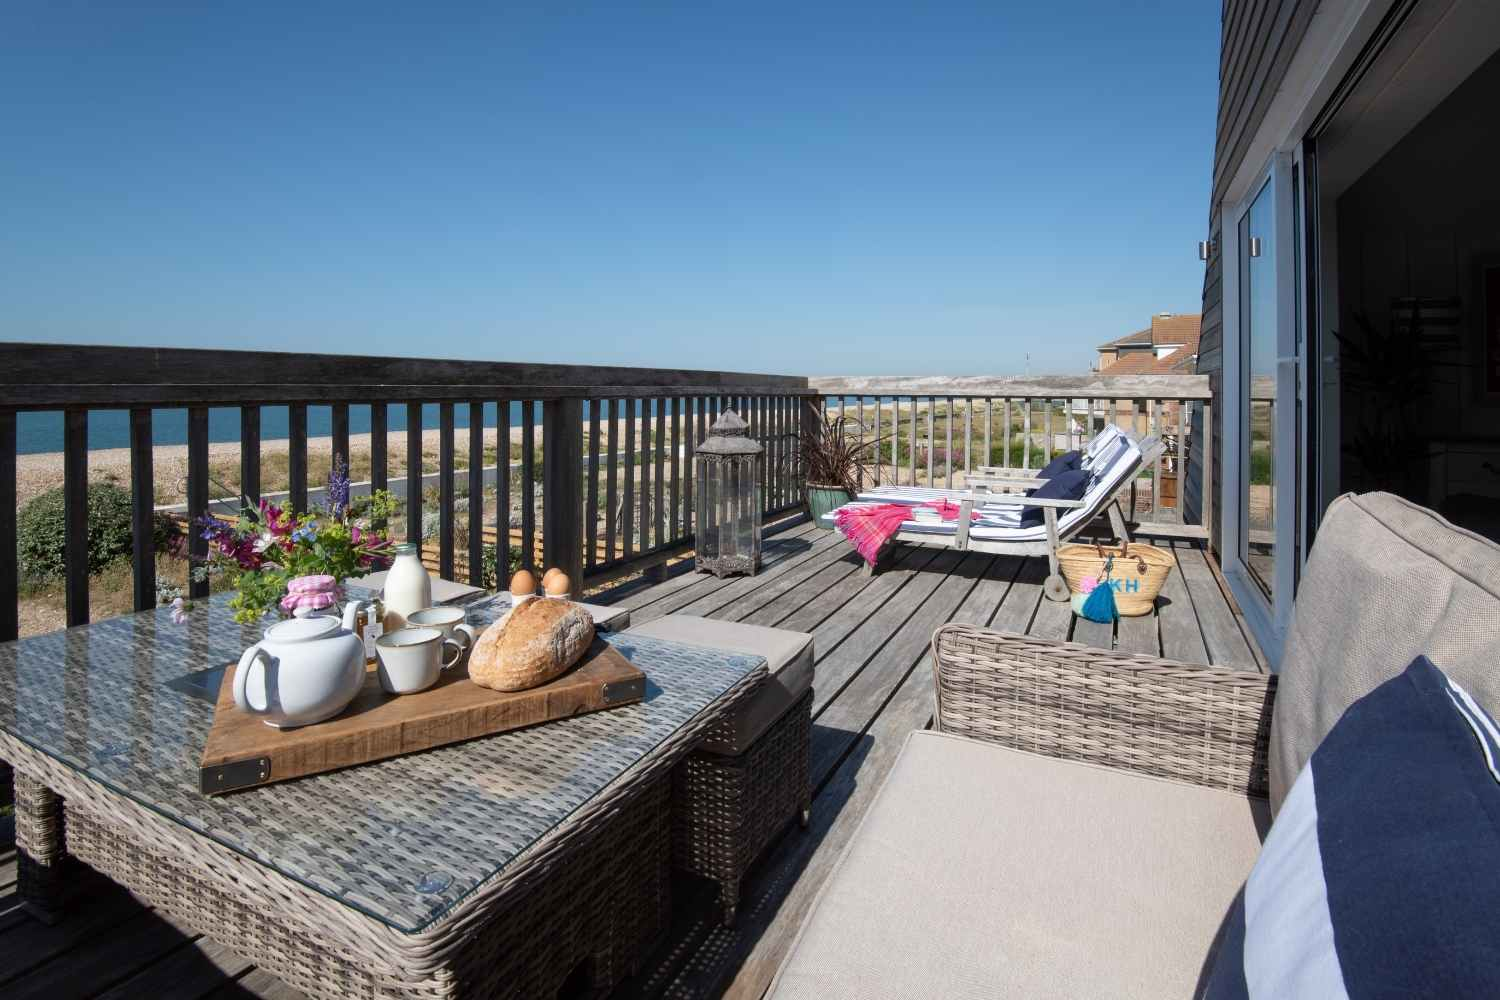 Sunny balcony with space for lounging